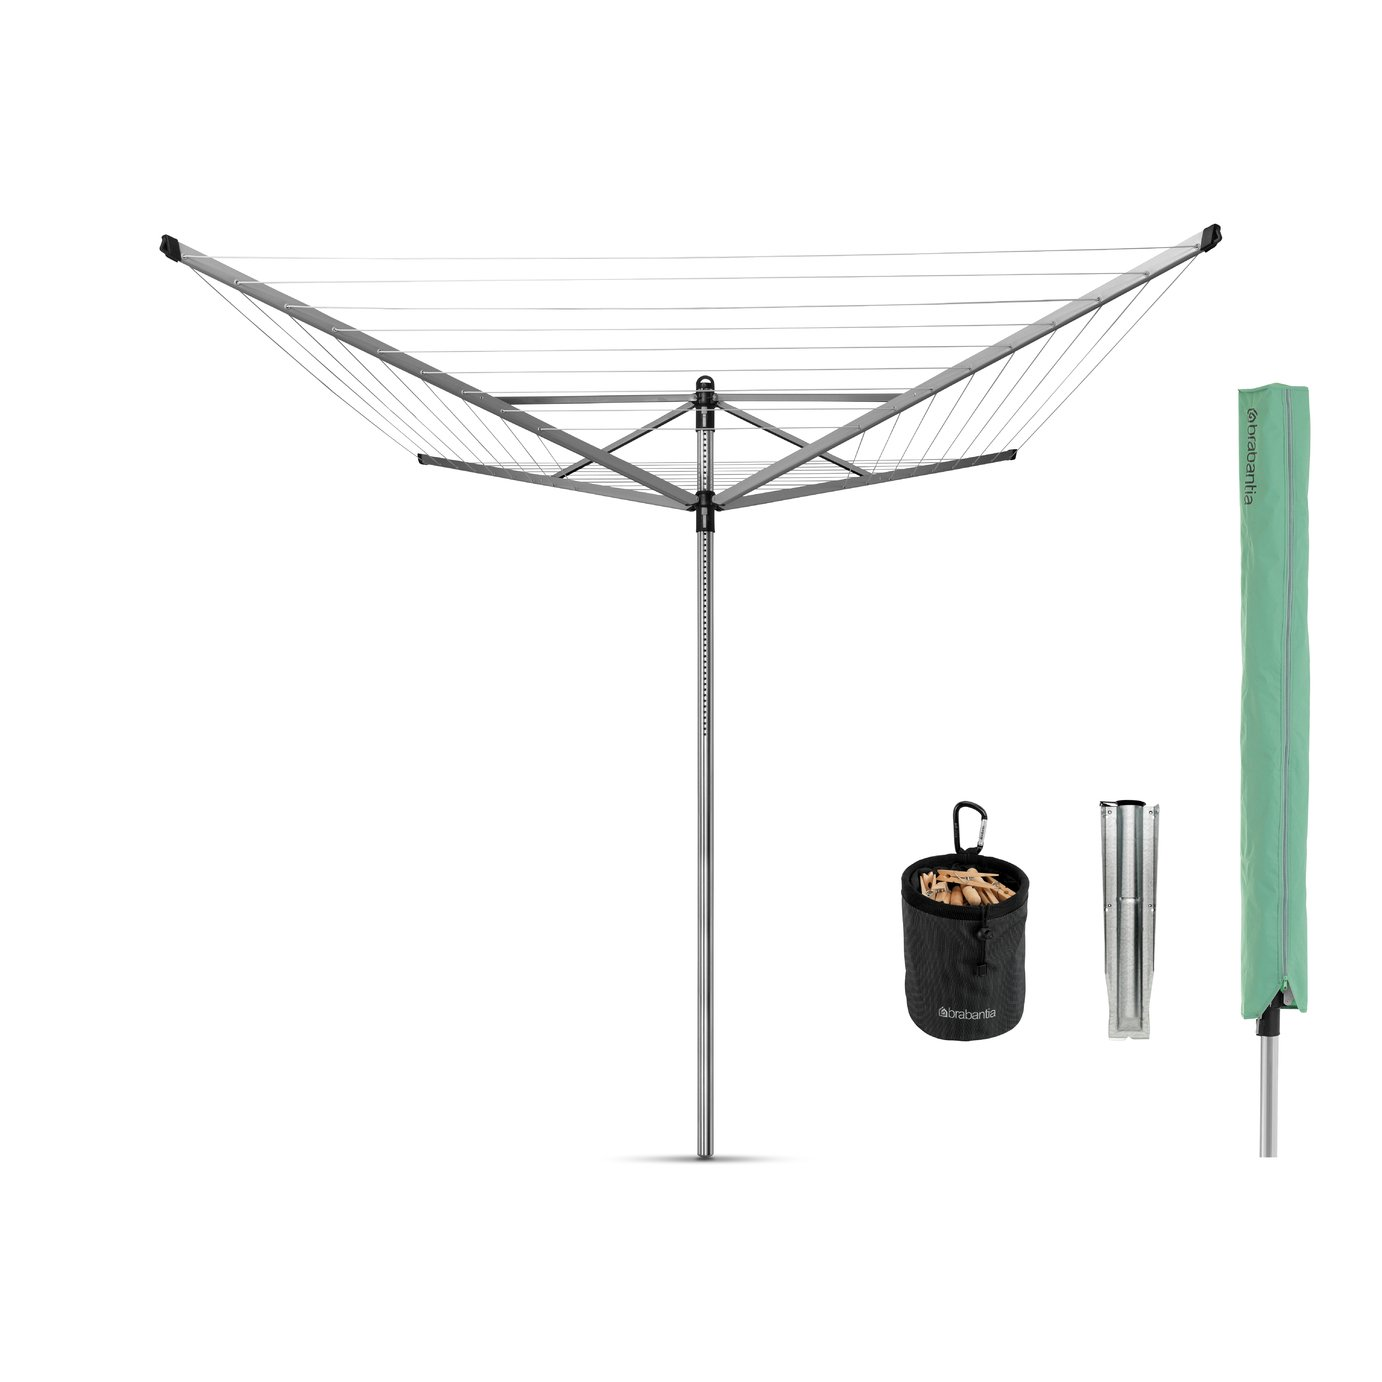 Image of Brabantia 50m 4 Arm Lift-O-Matic Washing Line & Accessories